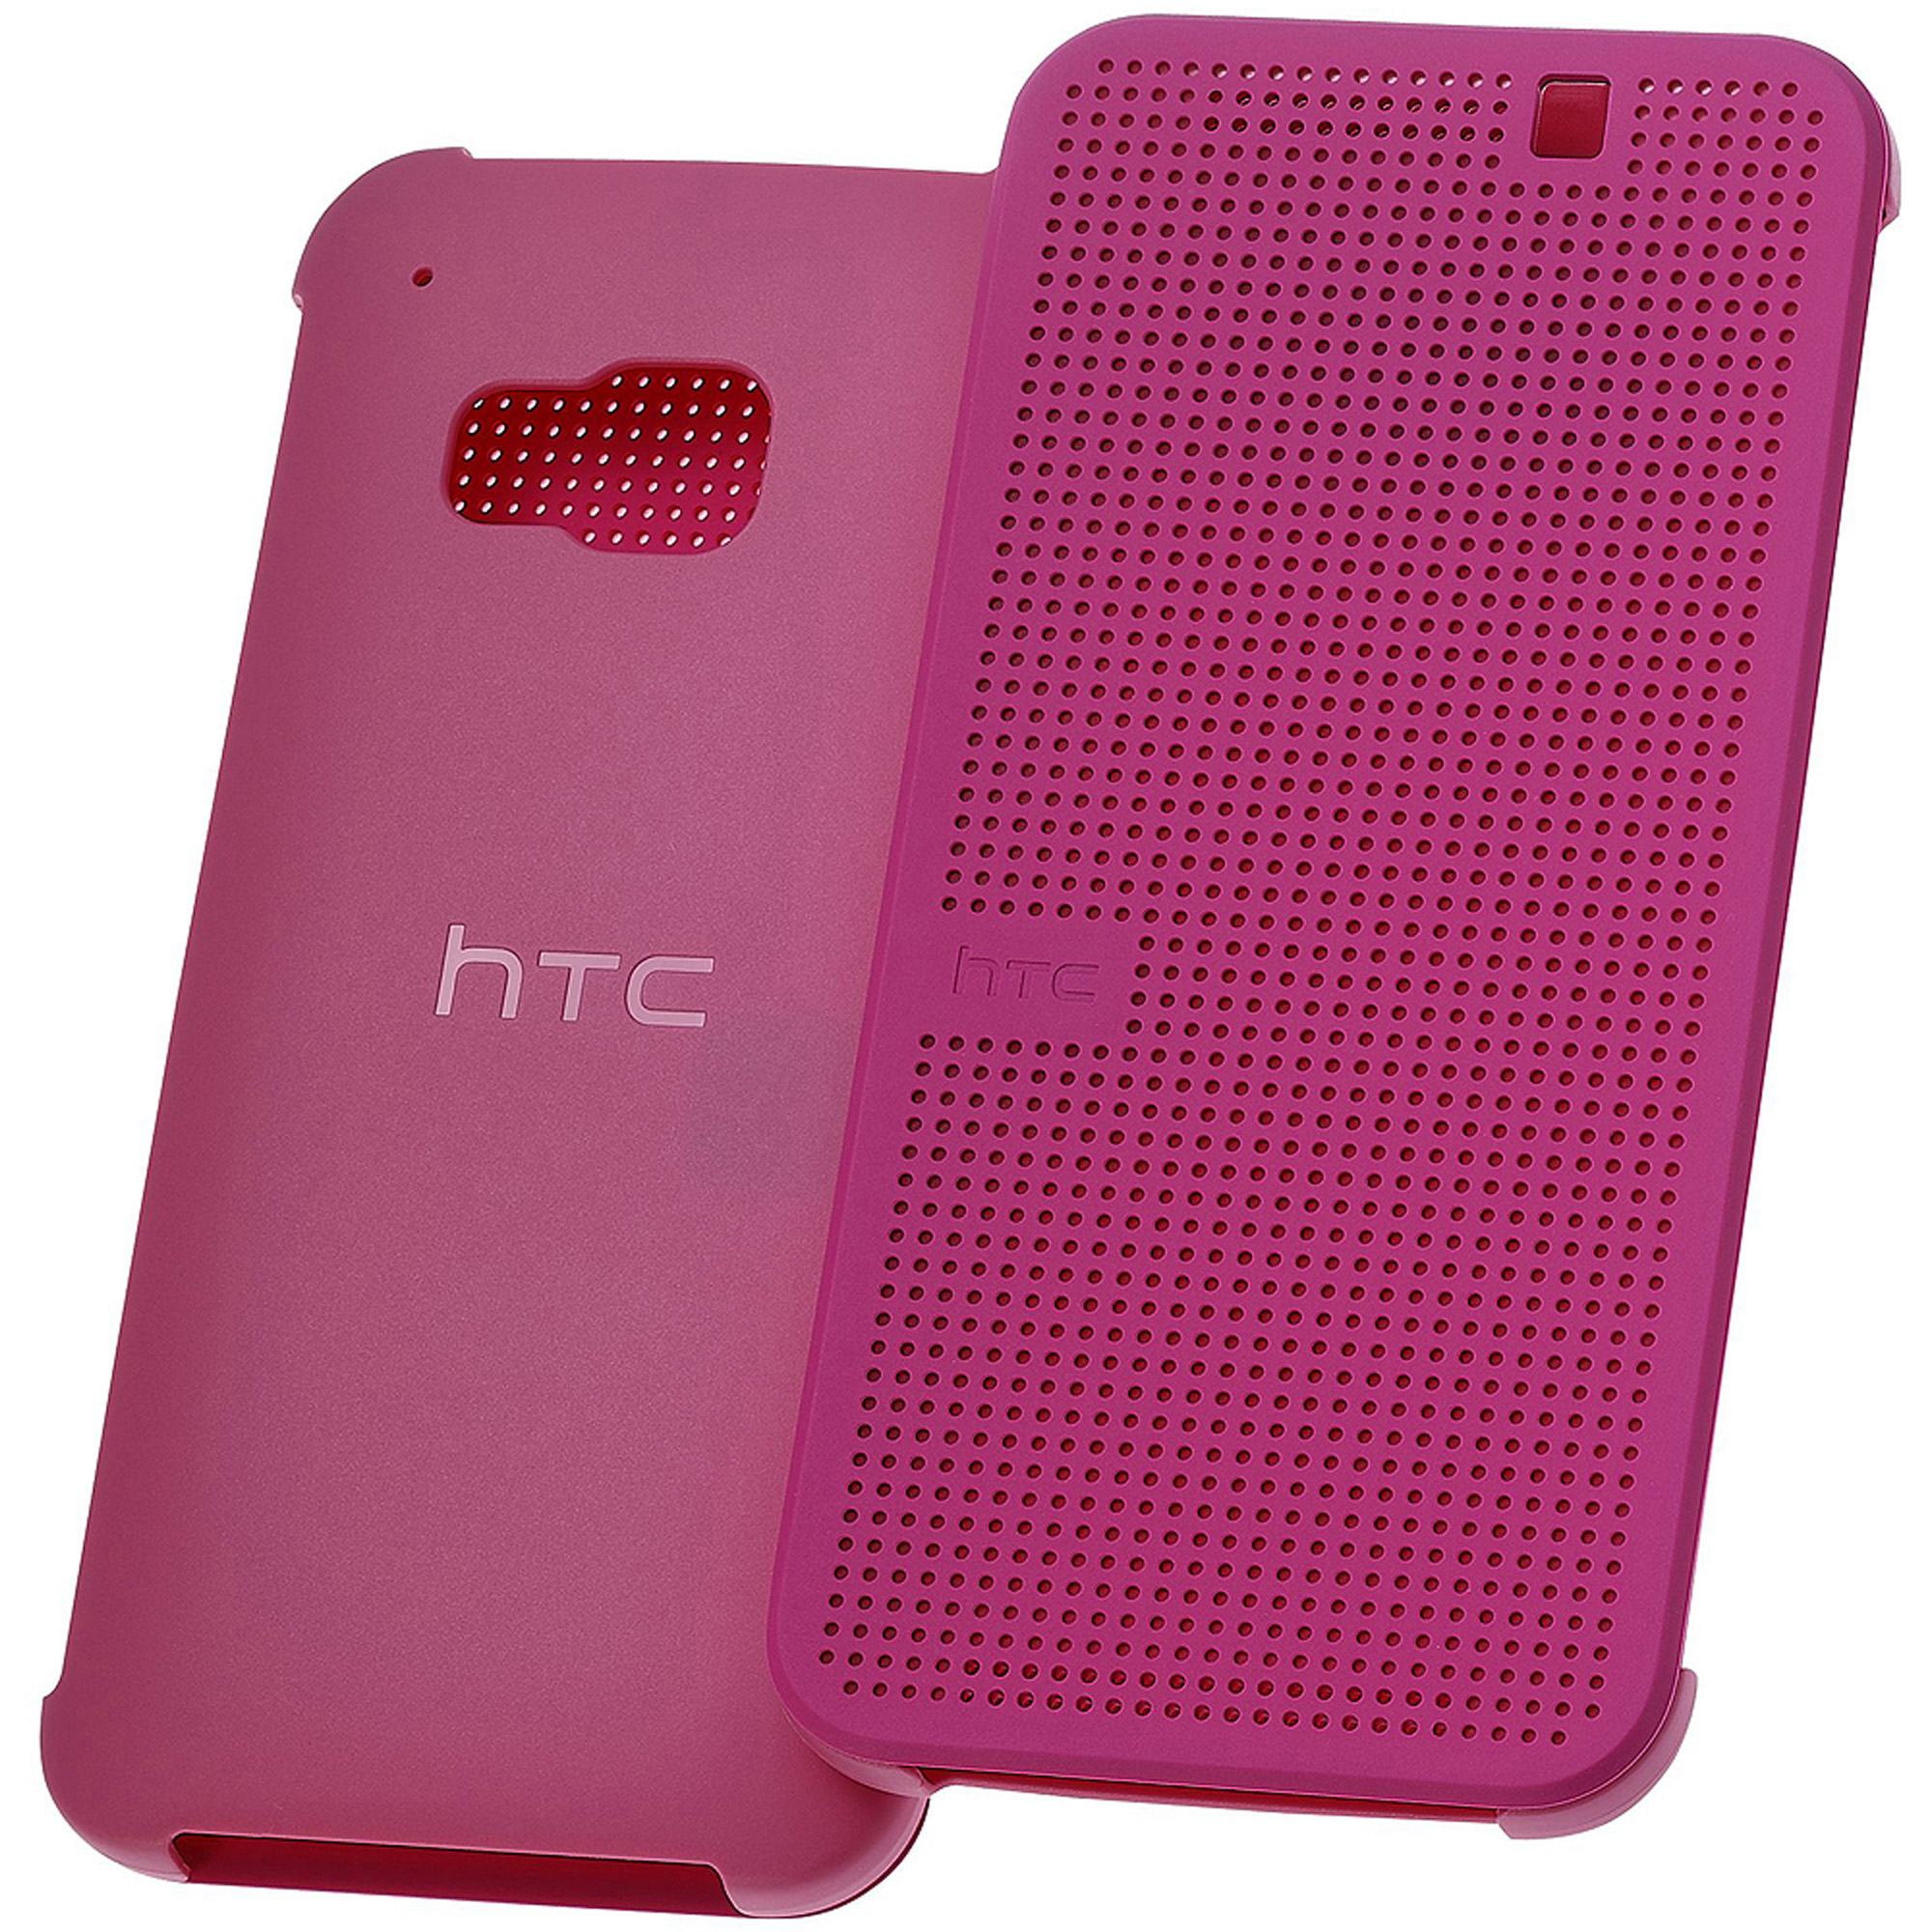 HTC Dot View Premium Case for HTC One (M9), Candy Floss